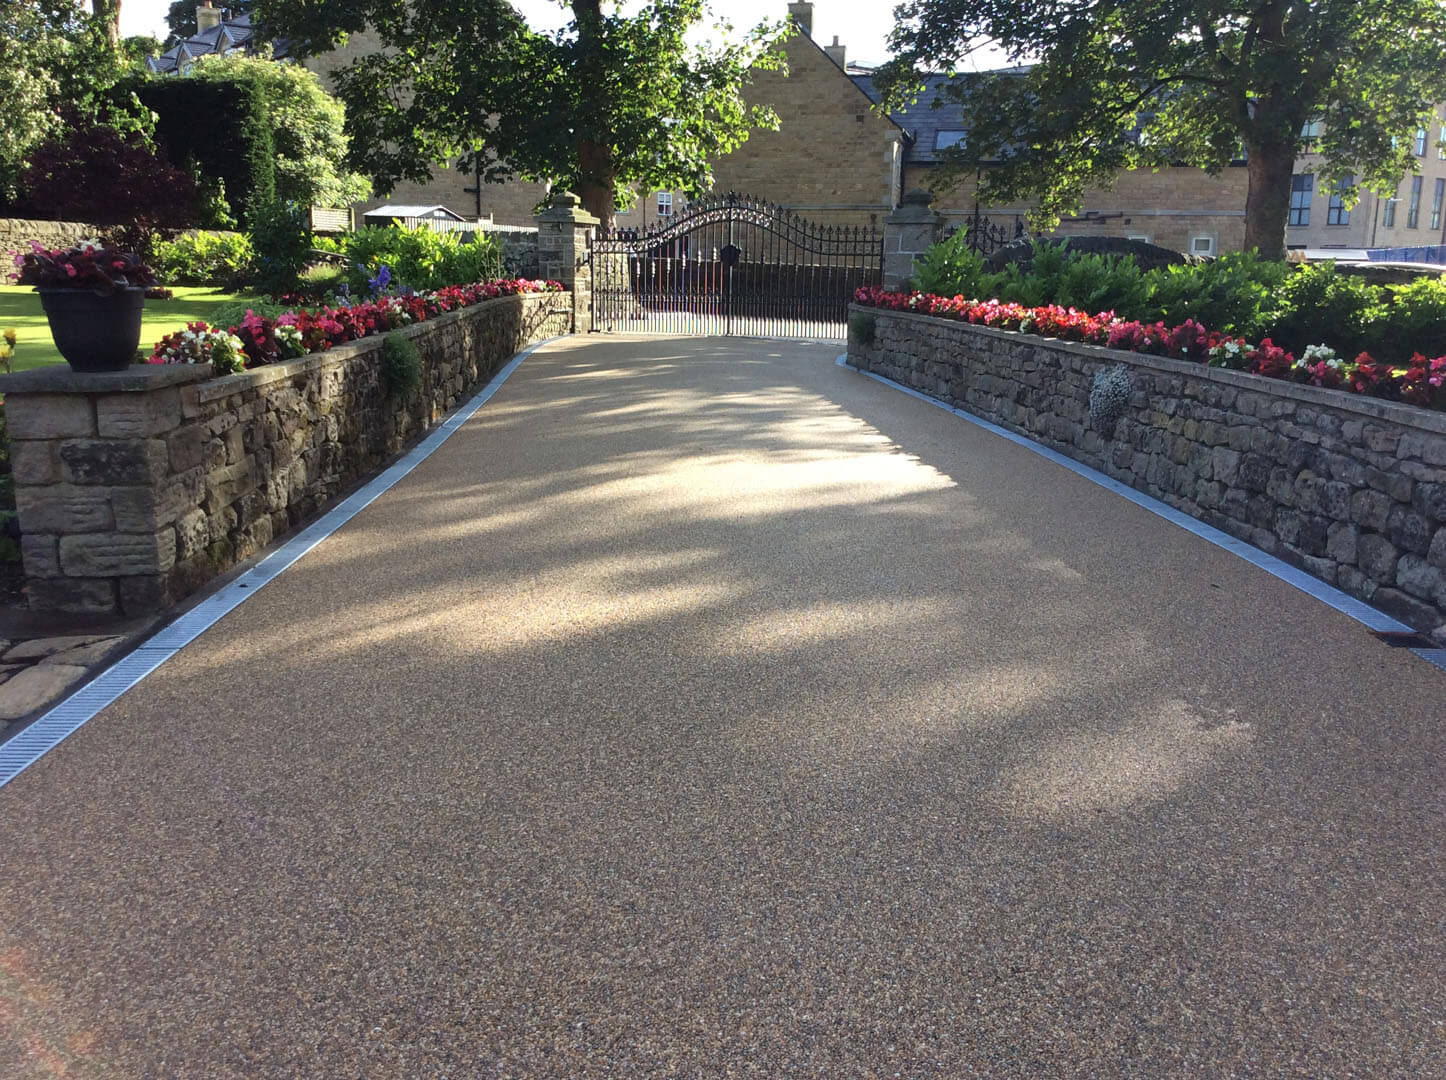 Build a drive the harrogate girl driveway home and garden 7